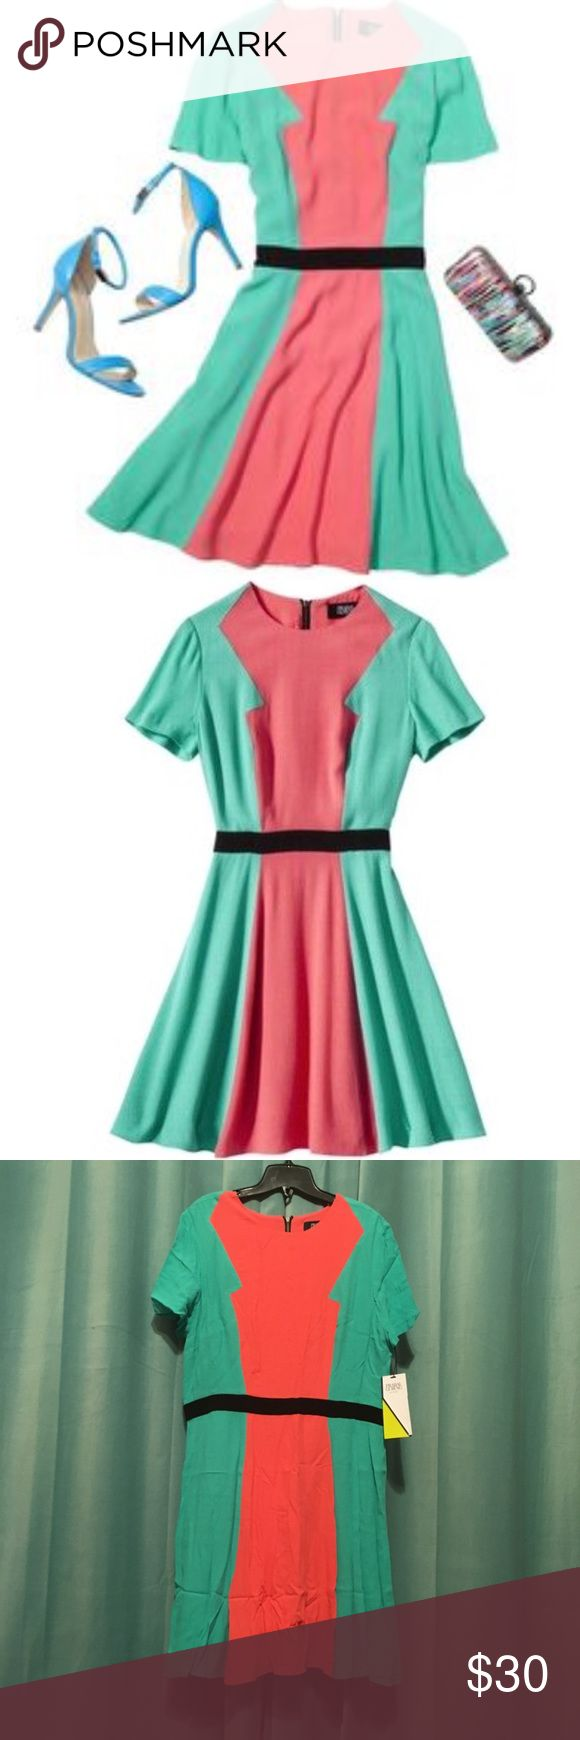 ⭐️HOST PICK⭐️Prabal Gurung@Target NWT Dress- SZ 16 Prabal Gurung @ Target 60's Style Teal, Coral & Black Colorblock Dress - Size 16 - NEW W/ TAGS & NEVER WORN!  This dress is so cute & flattering!  I bought this a while back when Prabal Gurung's super popular collab with Target came out & I managed to snatch one up before it sold out!  Sadly it didn't fit right, so my loss is your gain!  Join the ranks of fashionista by purchasing this awesome dress today! Prabal Gurung Dresses